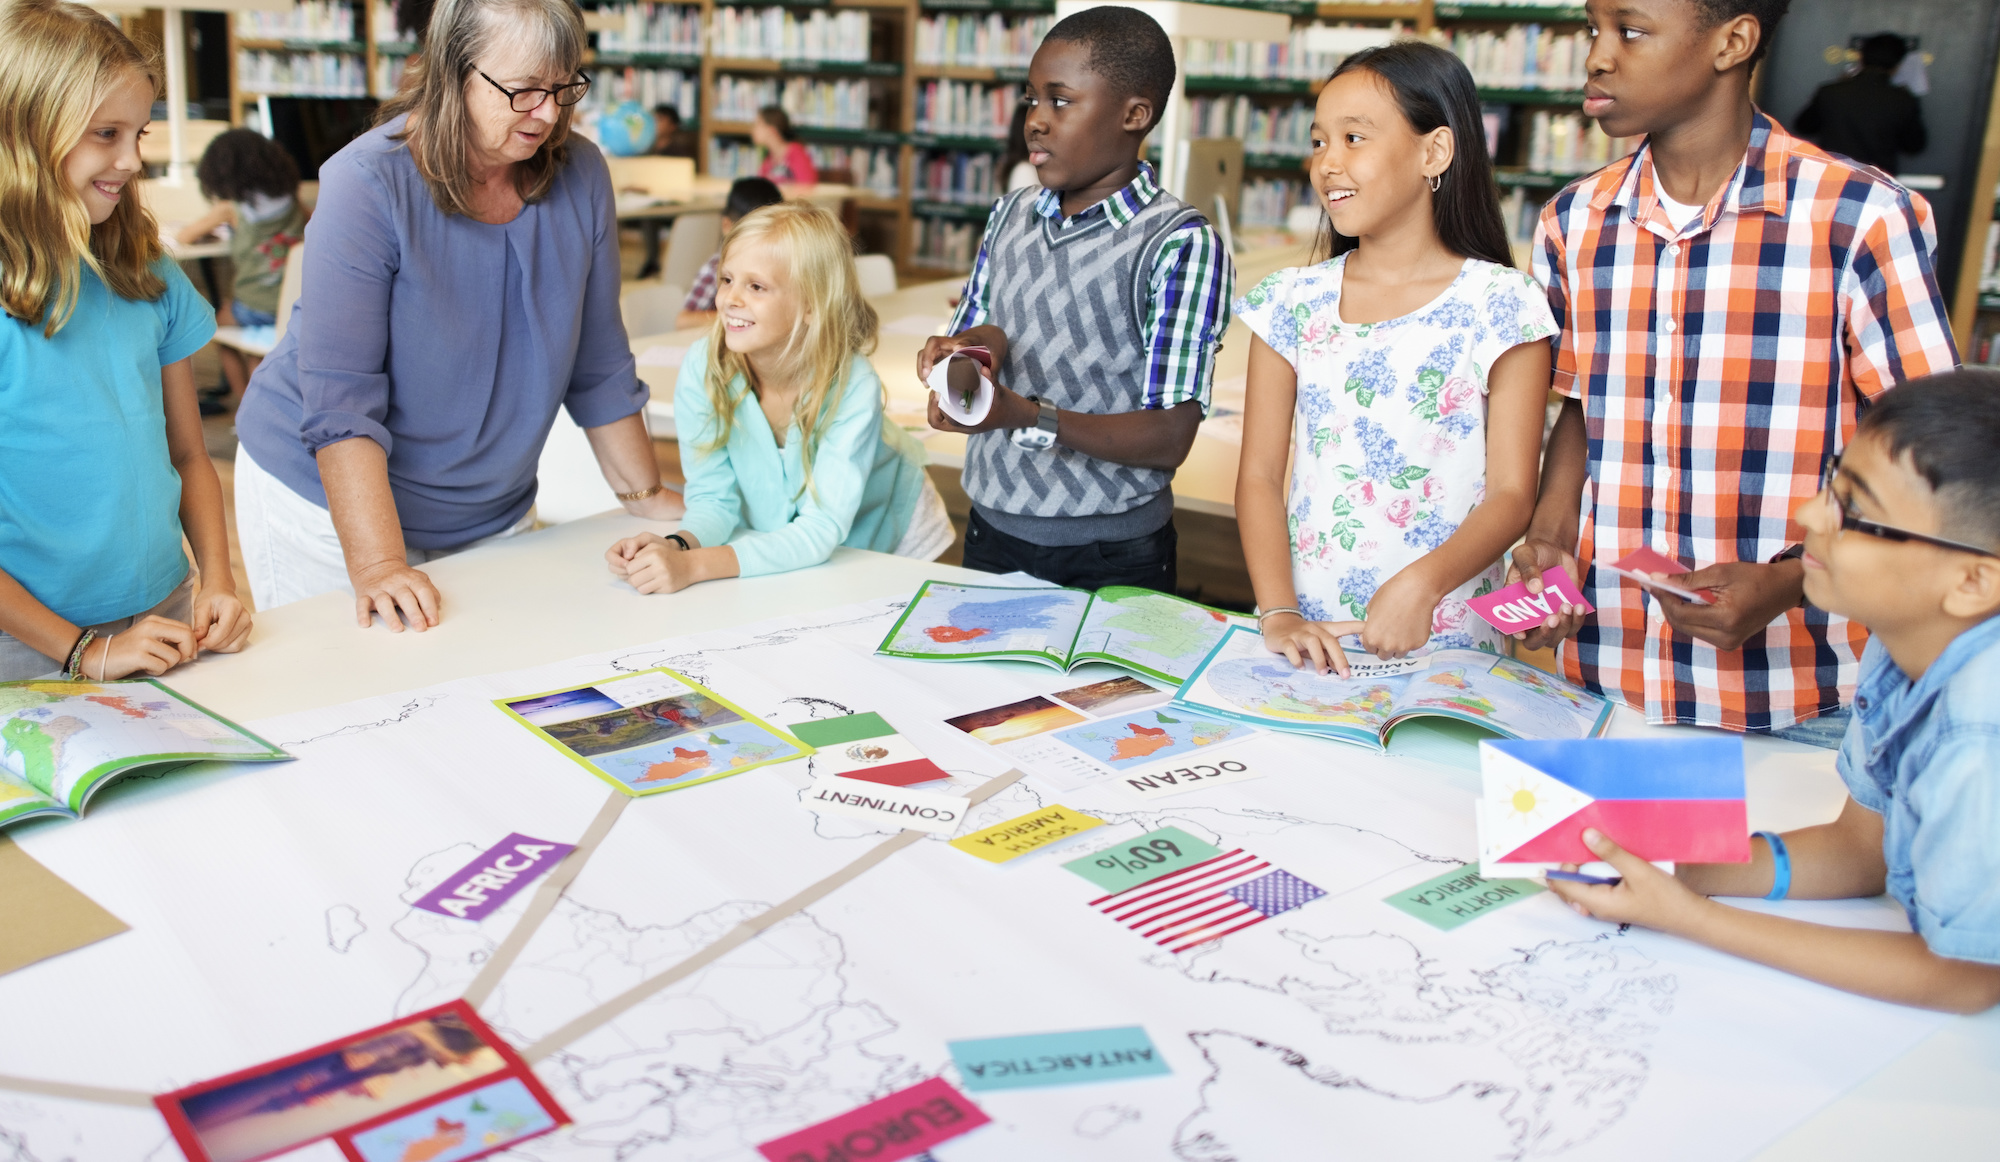 A group of middle school students are gathered around a table with a teacher looking at books and reports